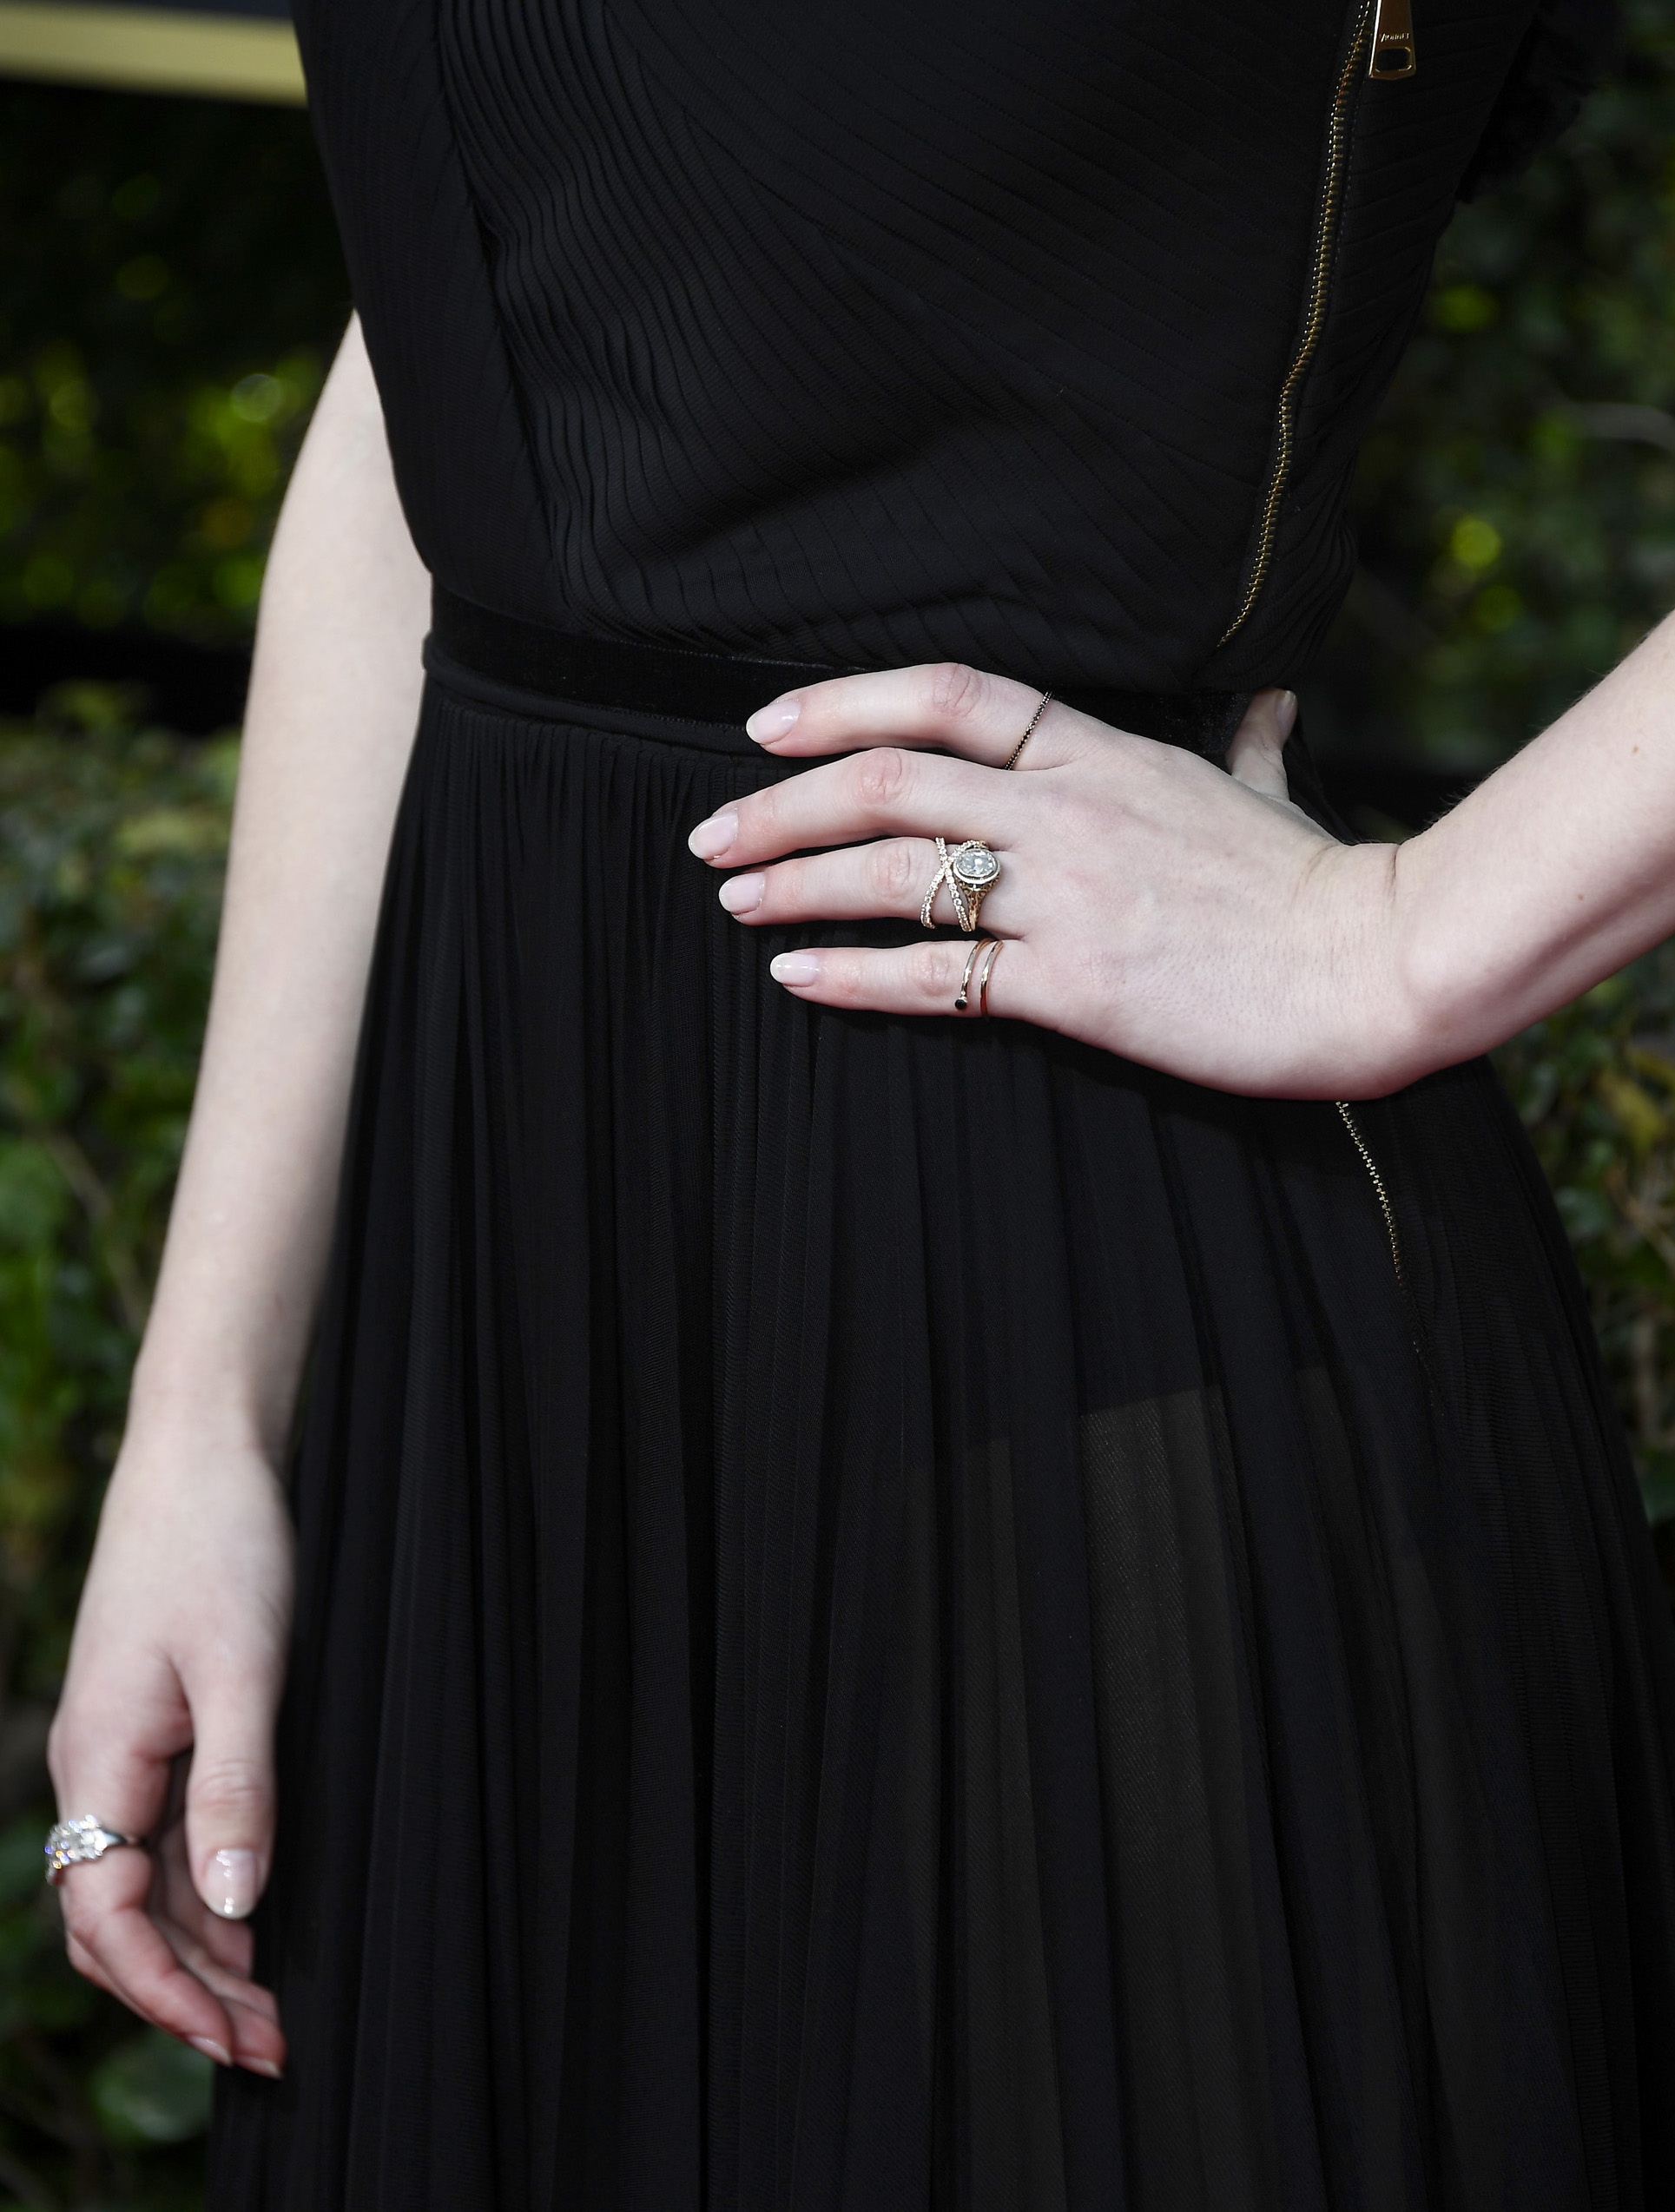 BEVERLY HILLS, CA - JANUARY 07:  Actor Rachel Brosnahan (jewelry detail) attends The 75th Annual Golden Globe Awards at The Beverly Hilton Hotel on January 7, 2018 in Beverly Hills, California.  (Photo by Frazer Harrison/Getty Images)